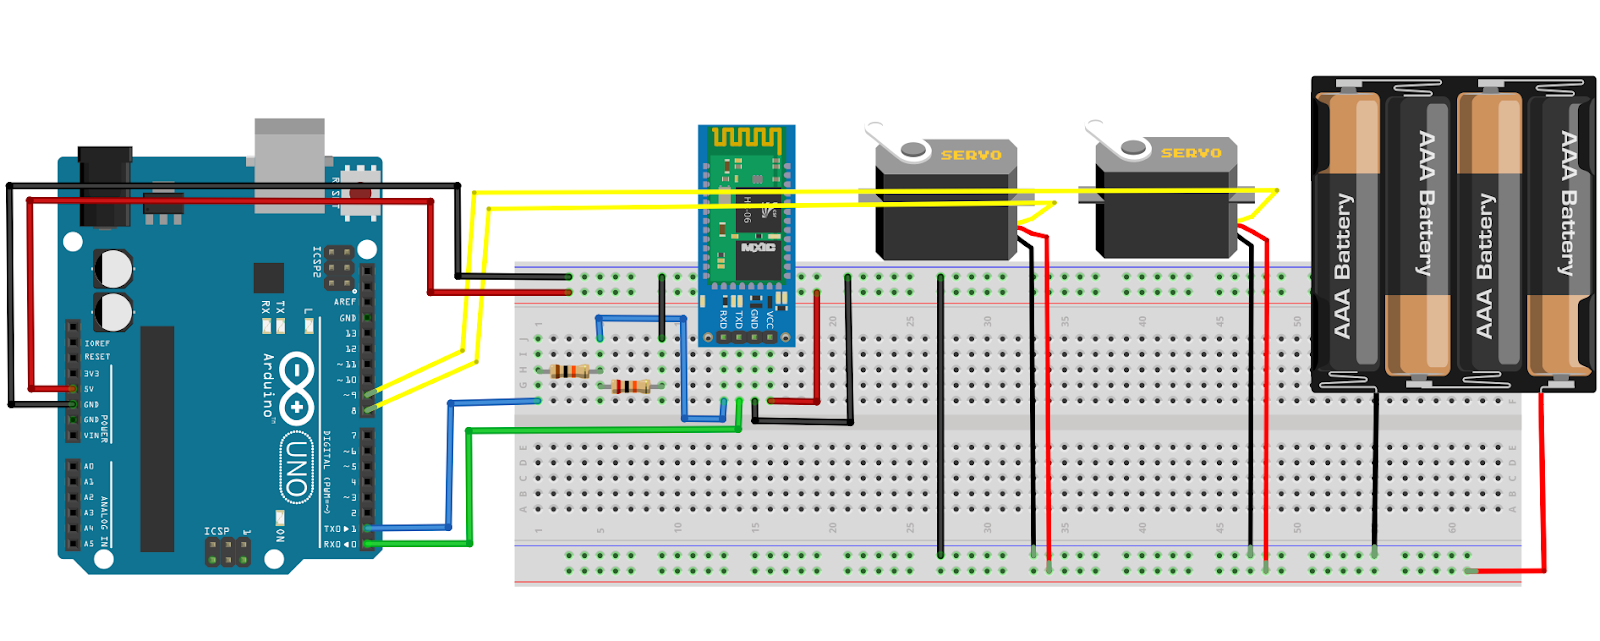 Arduino Pan Tilt Servo Motor Control Via Bluetooth Using Android App Pic Circuit Schematic Diagram